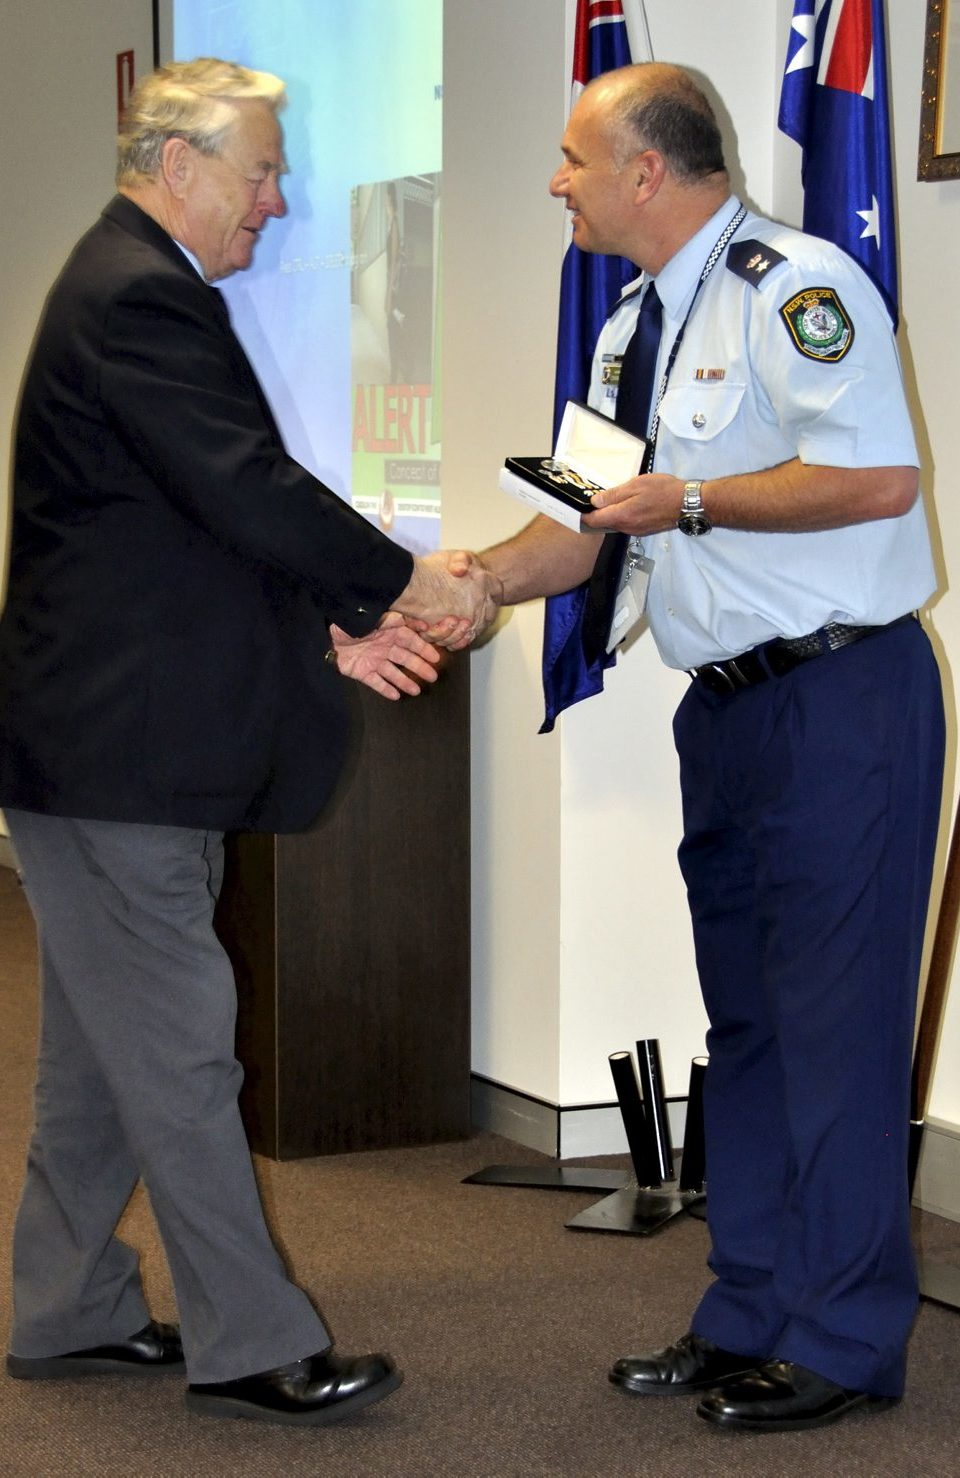 Gordon WEAVER accepting his Medal.